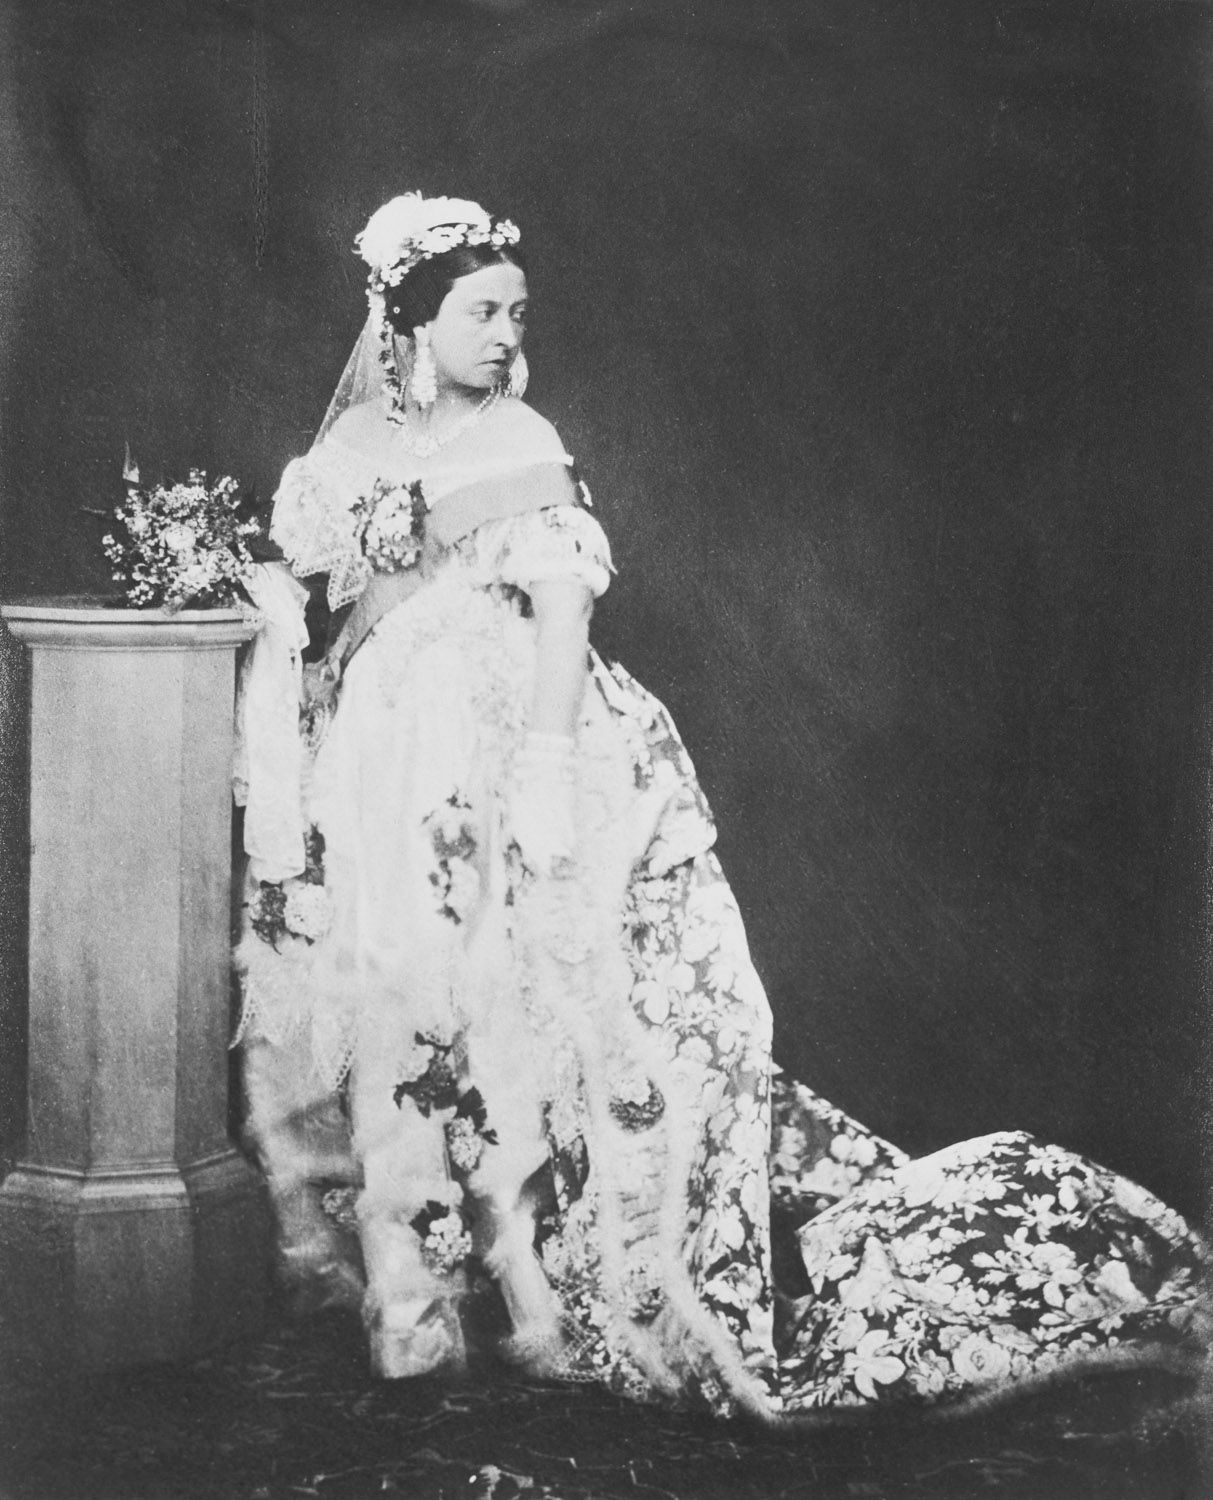 White Wedding Dress Queen Victoria: Queen Victoria (1819-1901) In Her Drawing Room Dress